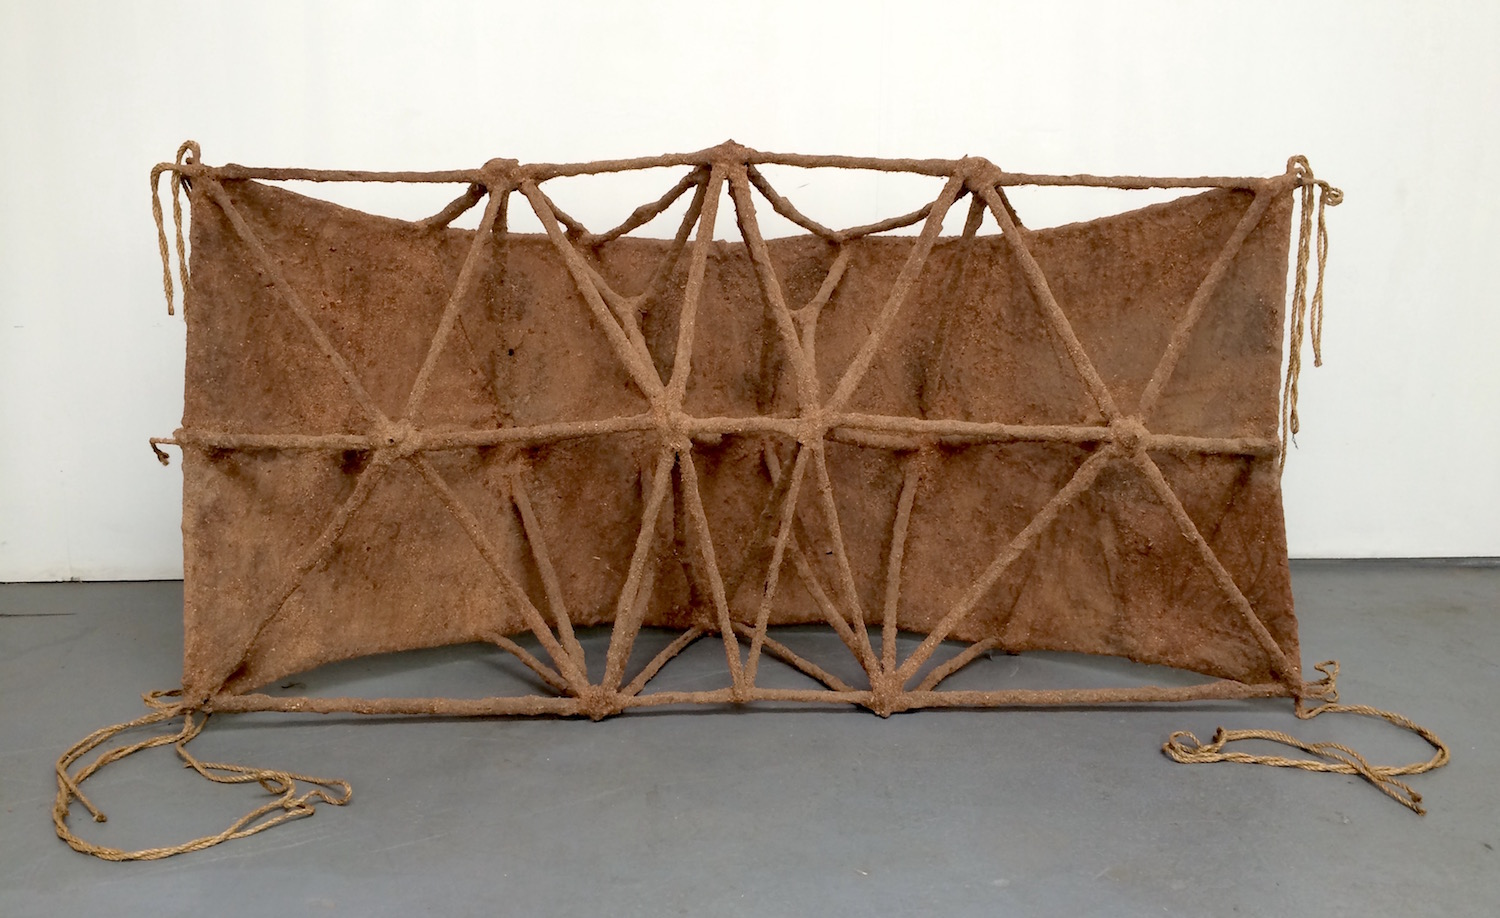 """HULL rope, canvas, jute, polyester resin, sawdust 28 x 45 x 102"""" 2016"""